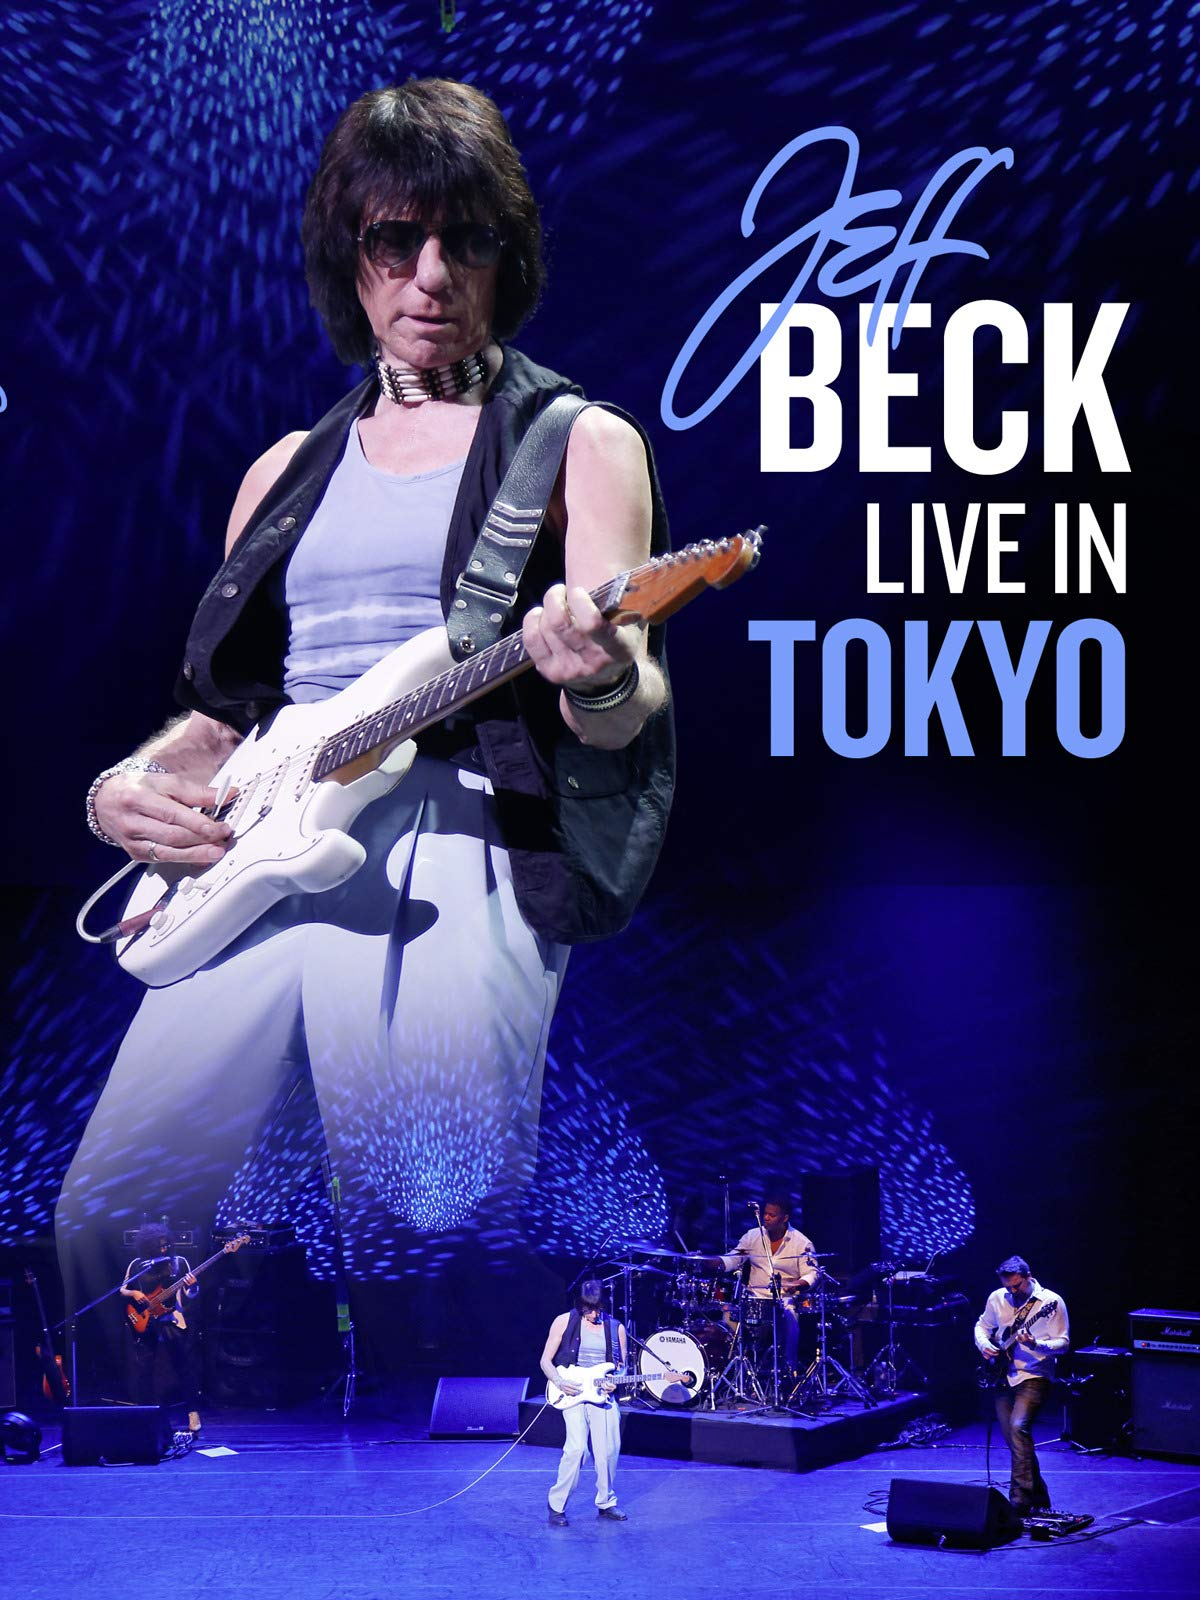 Jeff Beck - Live In Tokyo on Amazon Prime Video UK